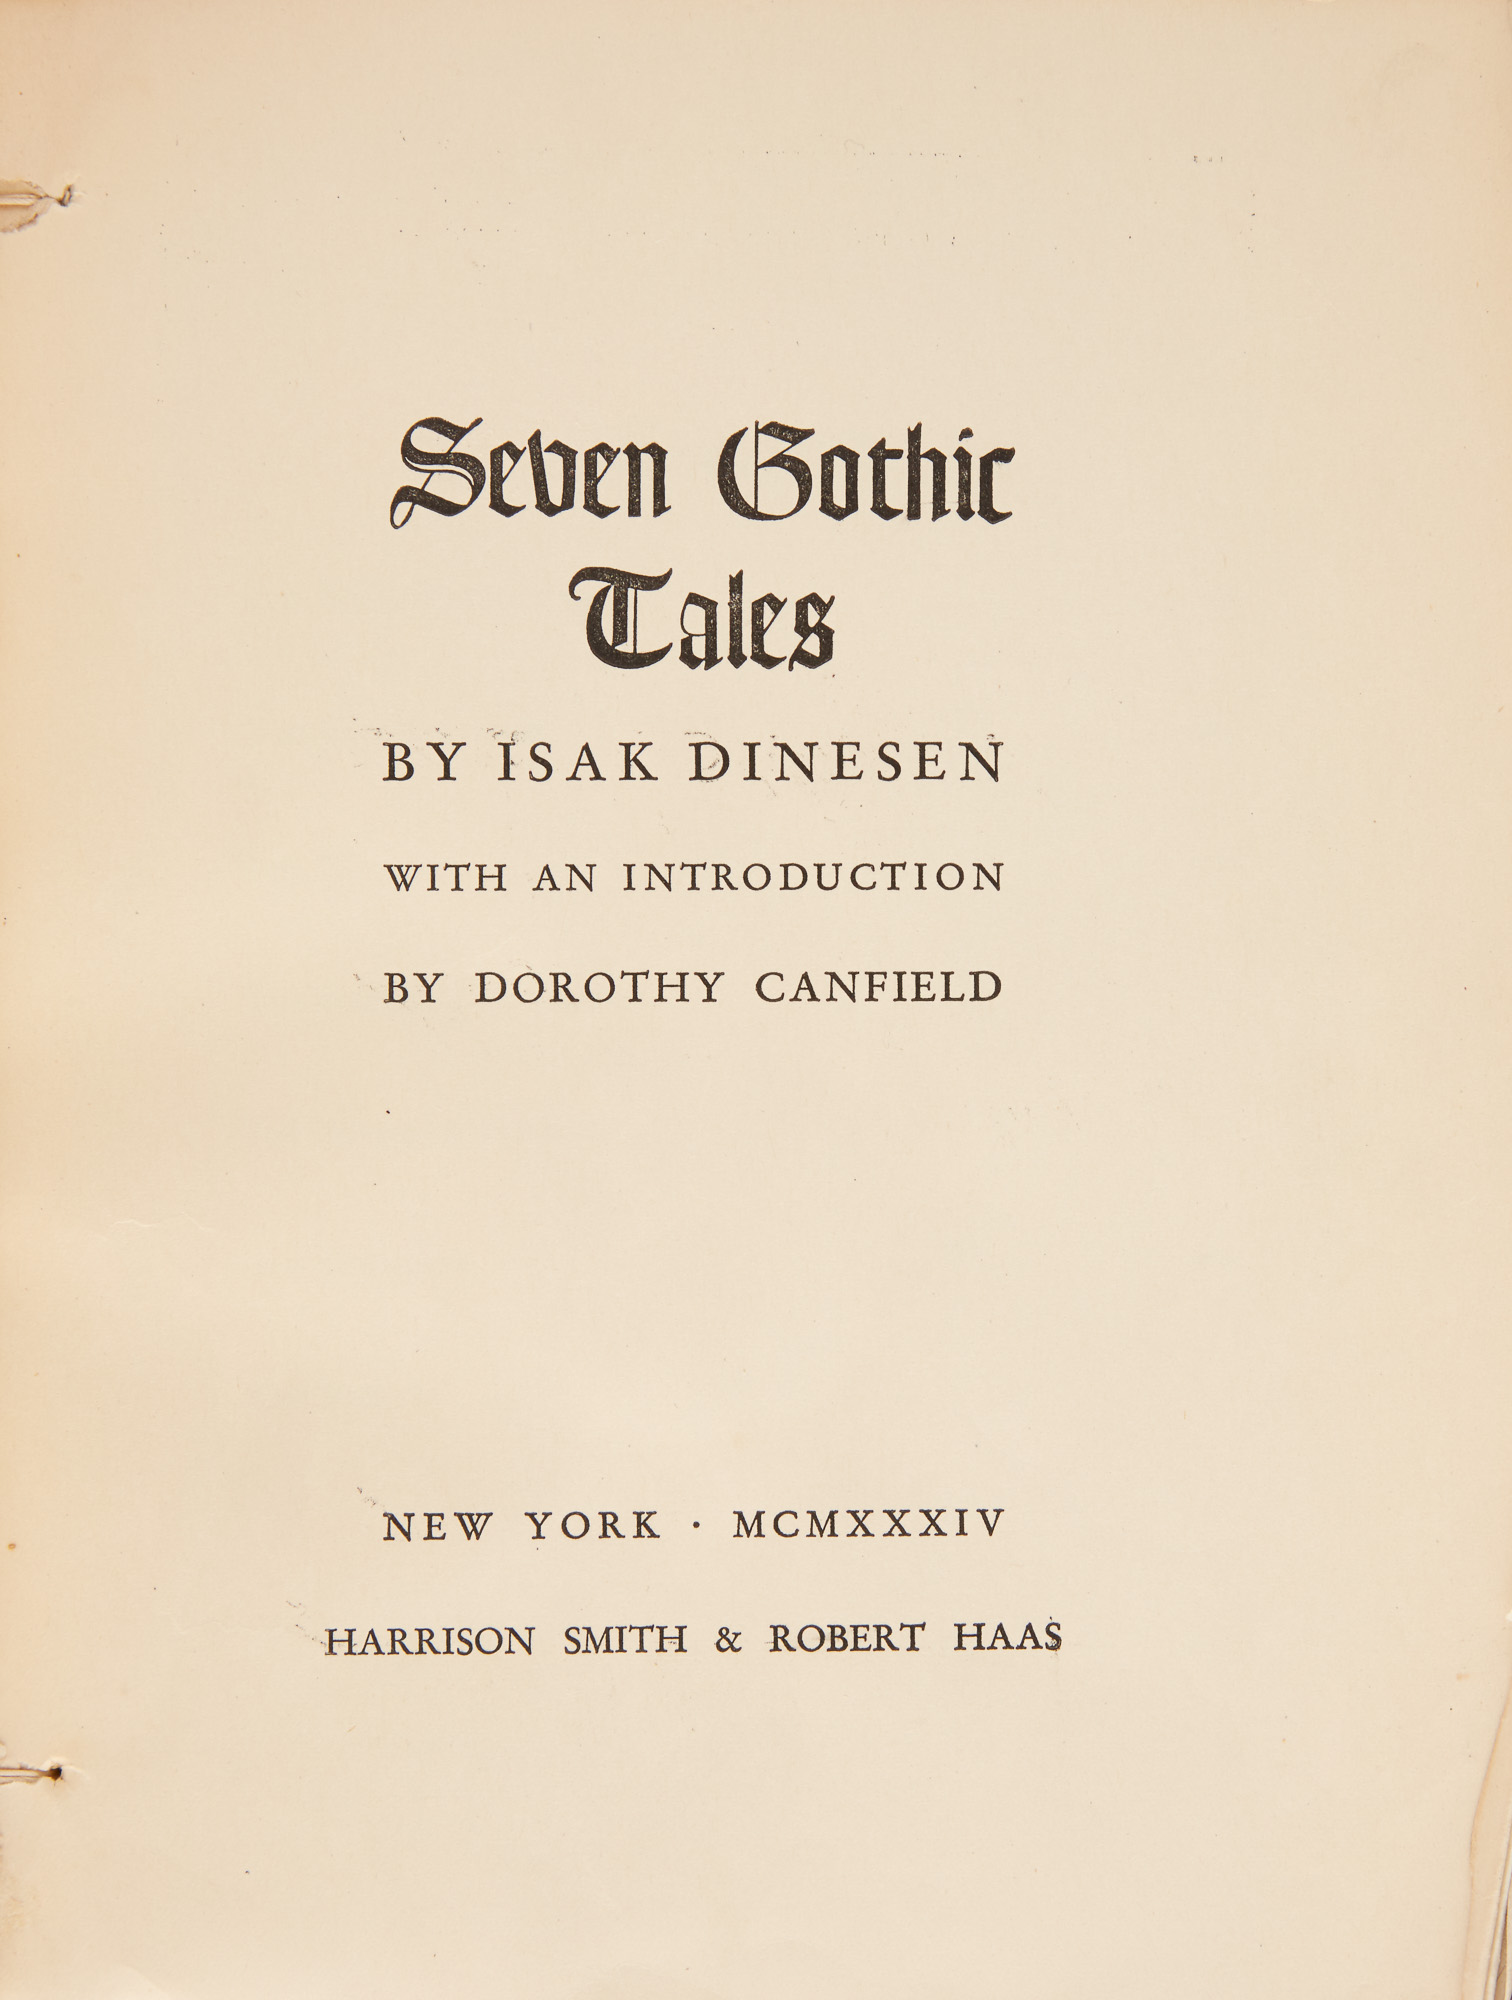 Lot image - DINESEN, ISAK [BLIXEN, KAREN]  Galley or proof copy of the American first edition of Seven Gothic Tales.